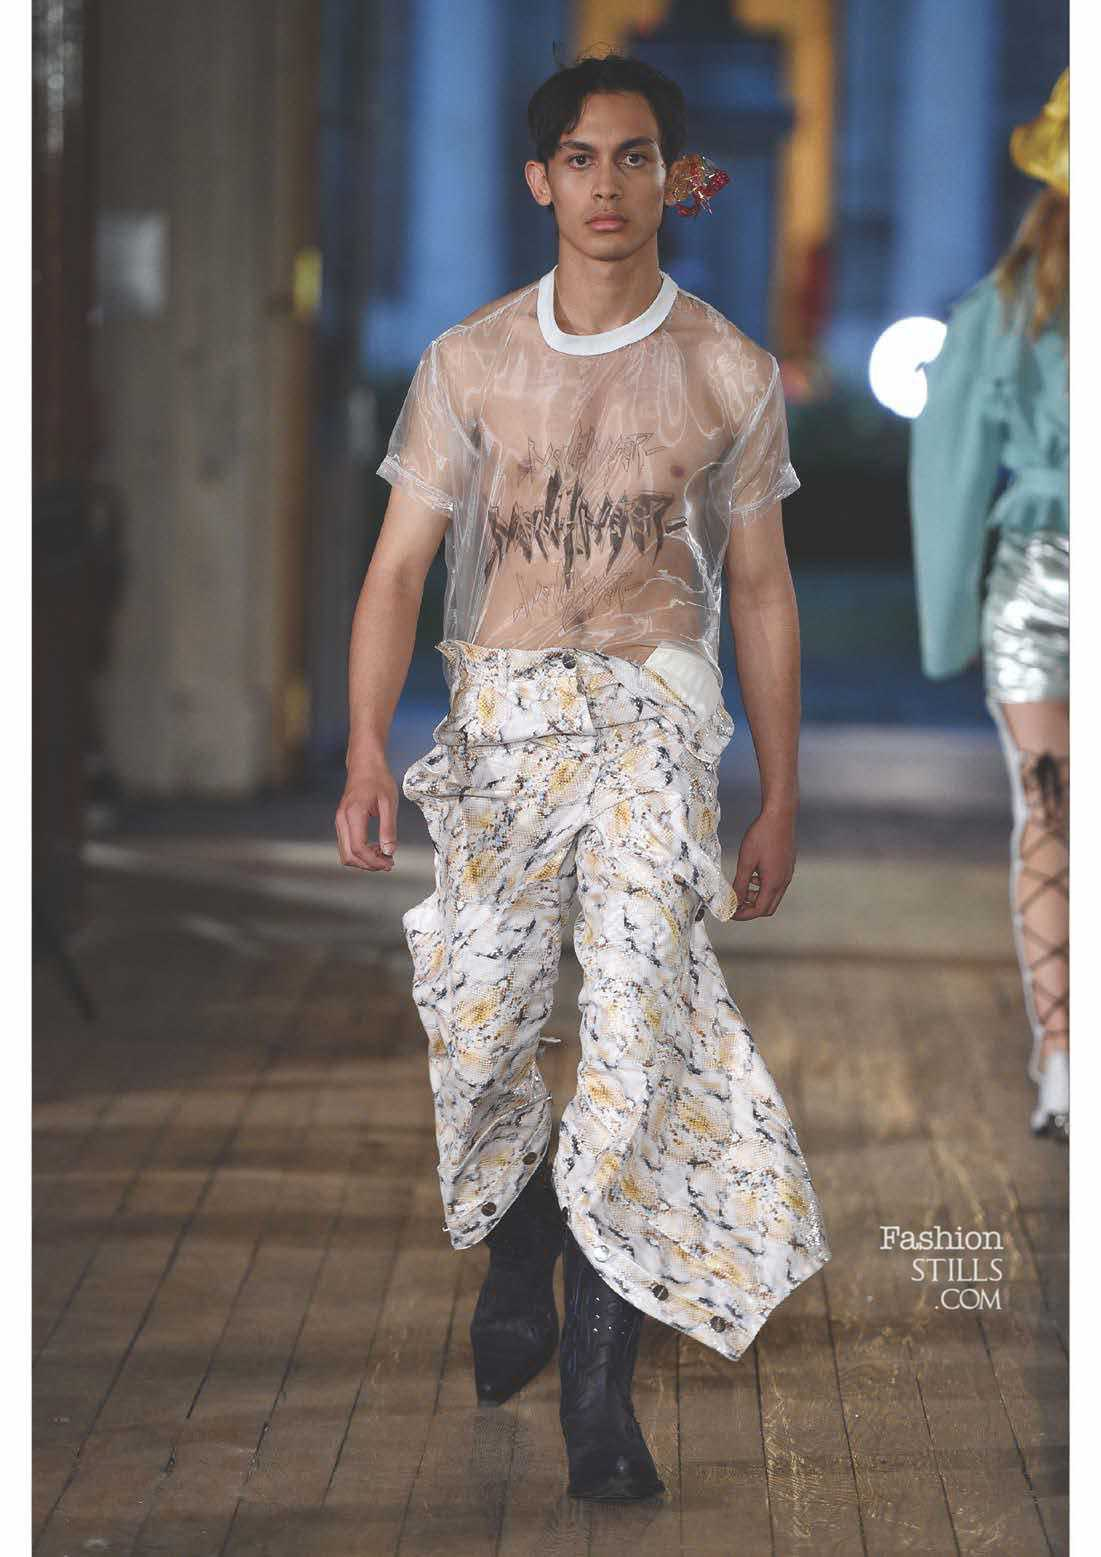 Neith Nyer_1513681575_31_look-book-_-press-release-ss18-neith-nyer-023.jpg